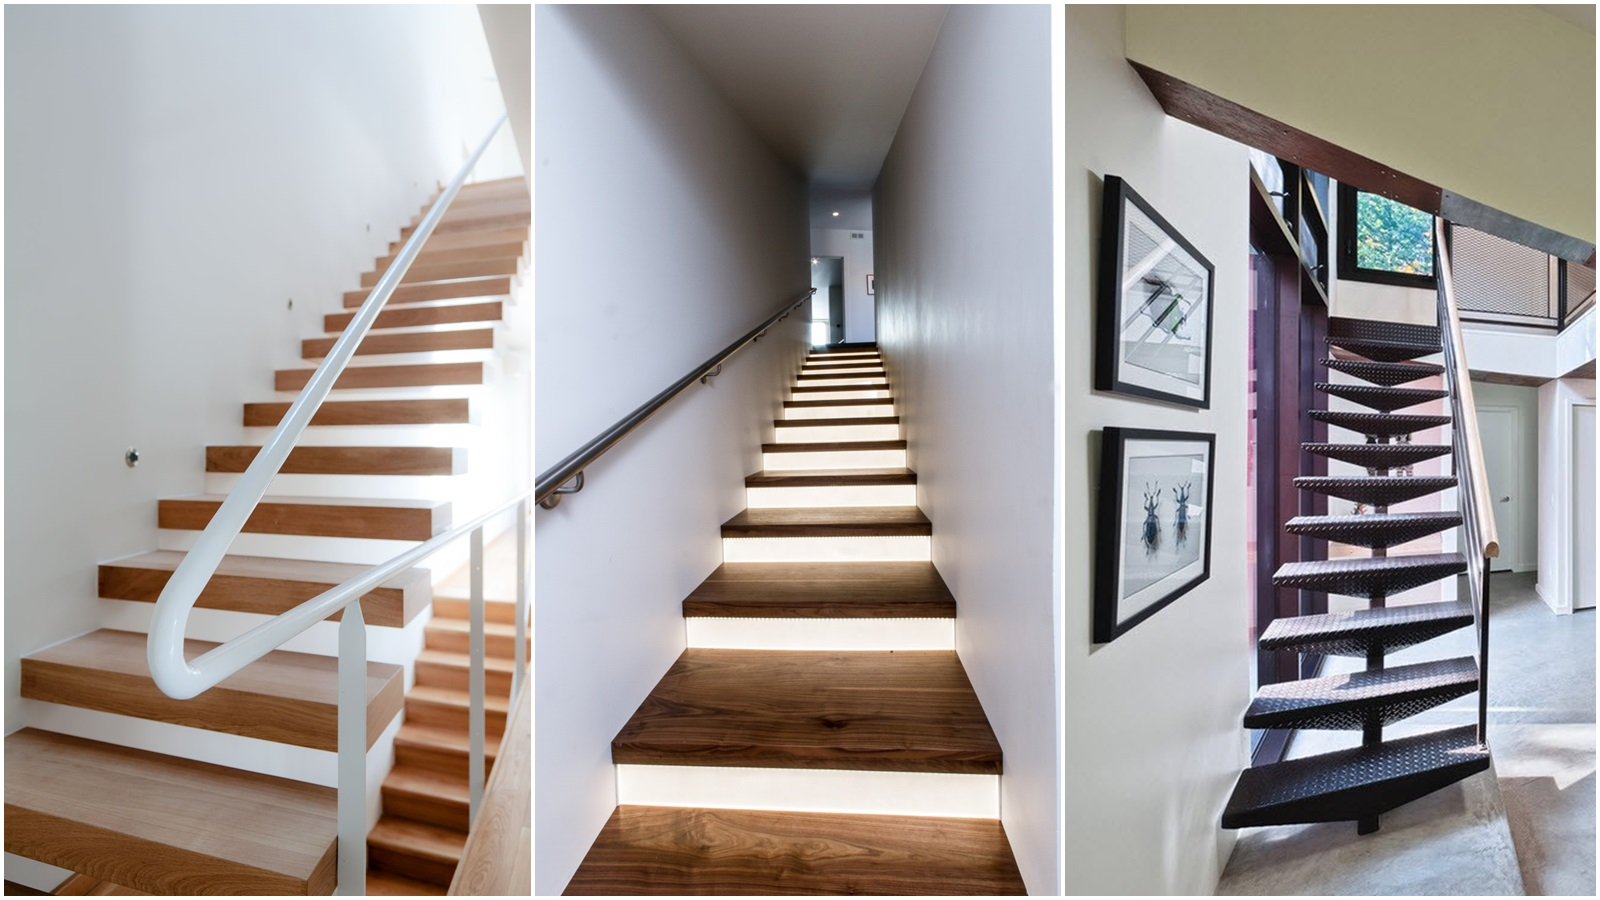 Staircase Designs For Small Spaces All Types Of Modern Stairs Designs And Staircase Railing